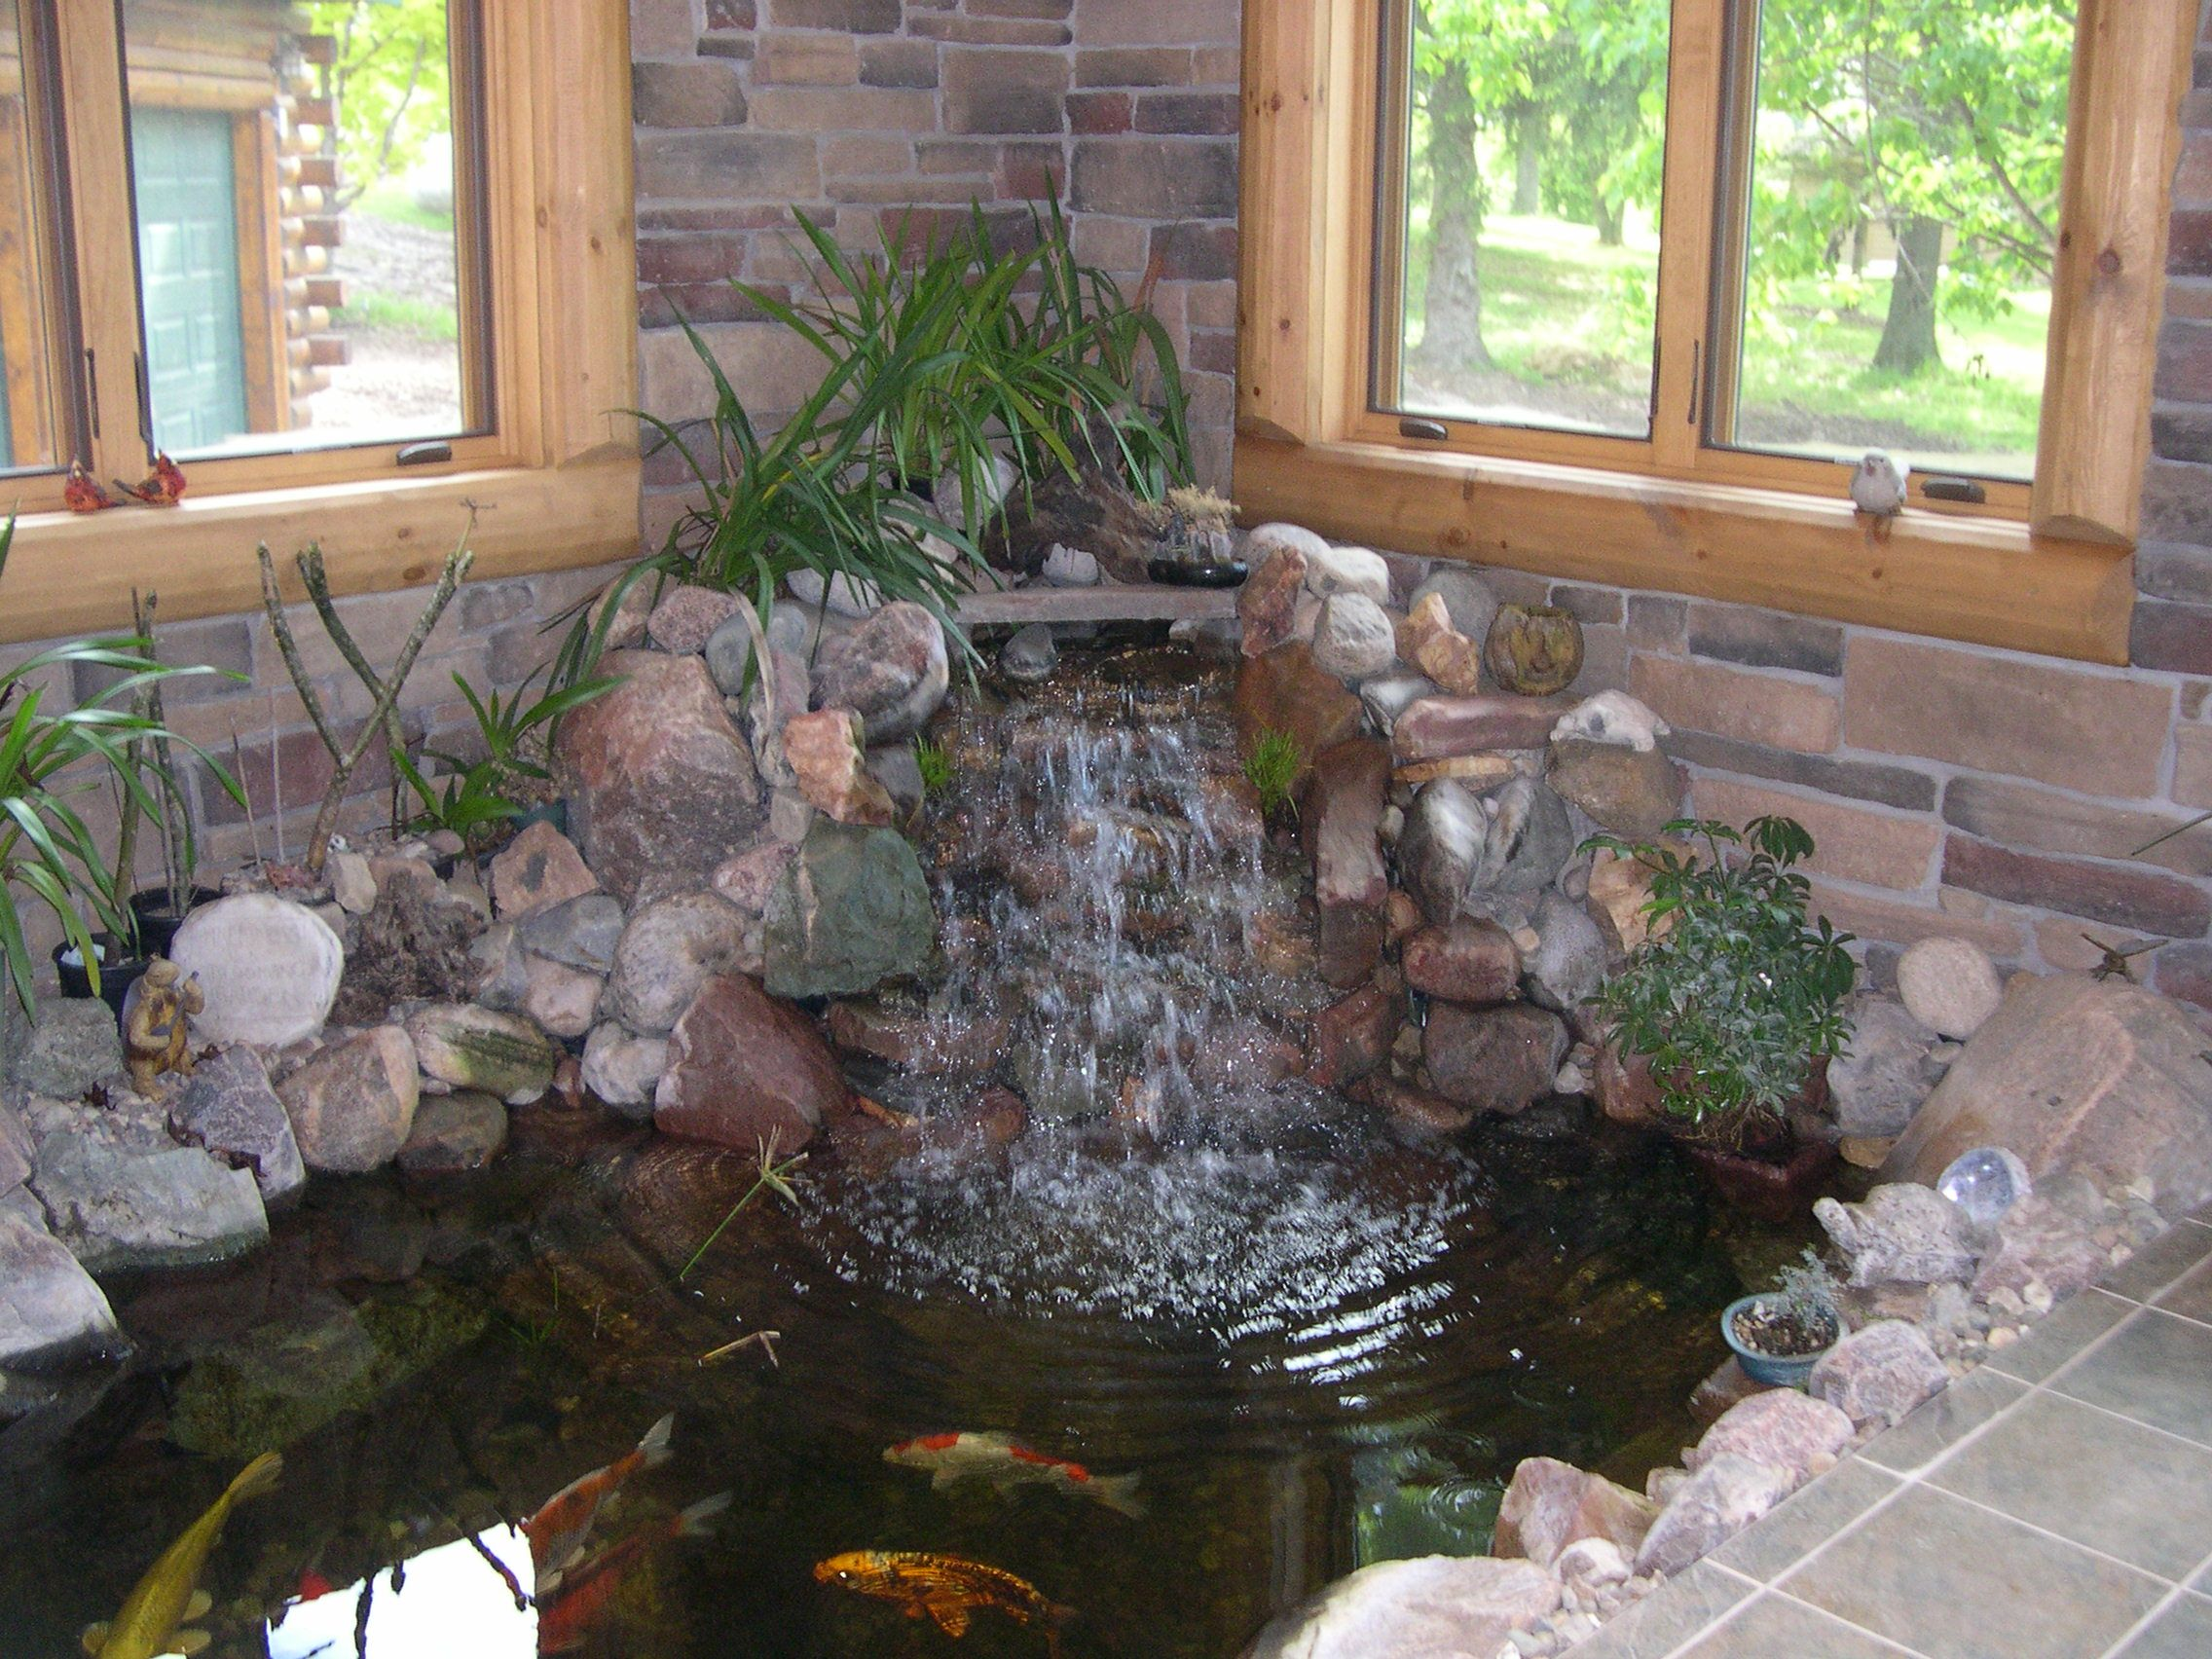 Fish pond designs pictures - Decoration Beautiful Luxury Small Indoor Koi Pond Design Ideas Awesome Indoor Ponds For Best